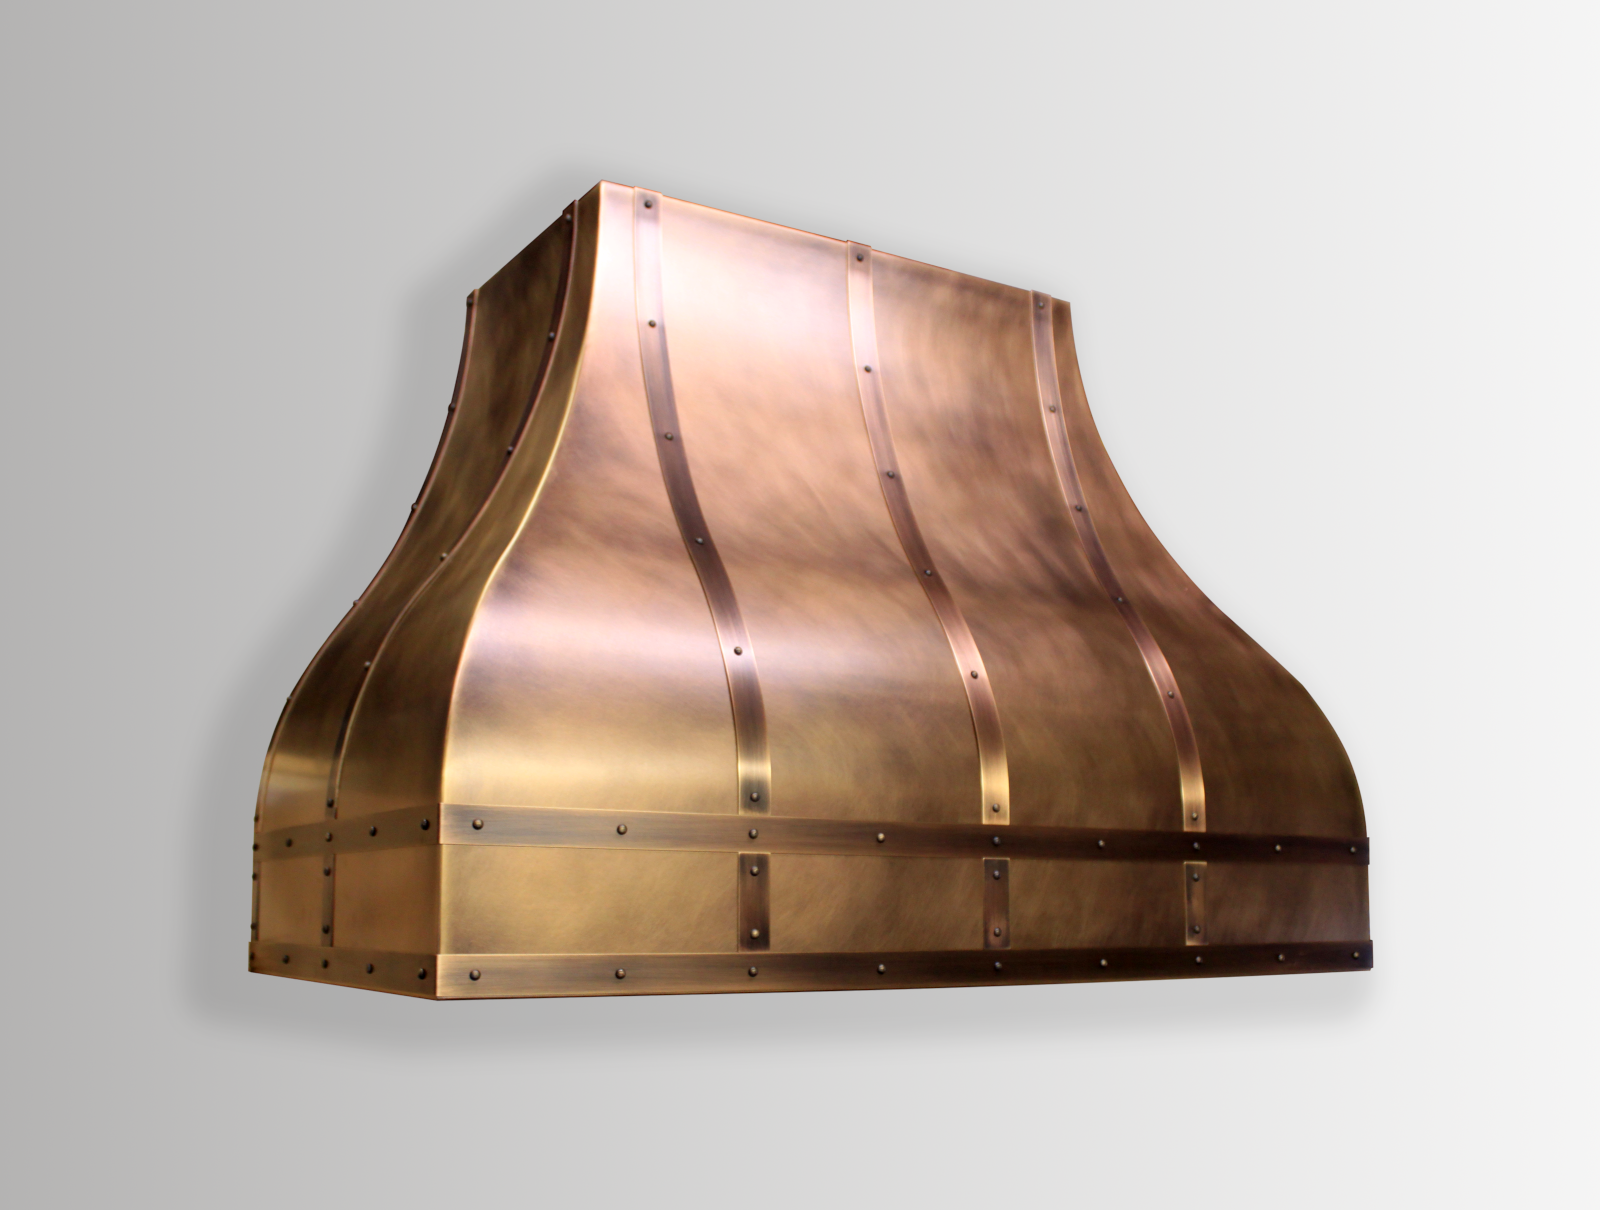 Wall mounted Venetian in antique copper body with brushed copper banding.